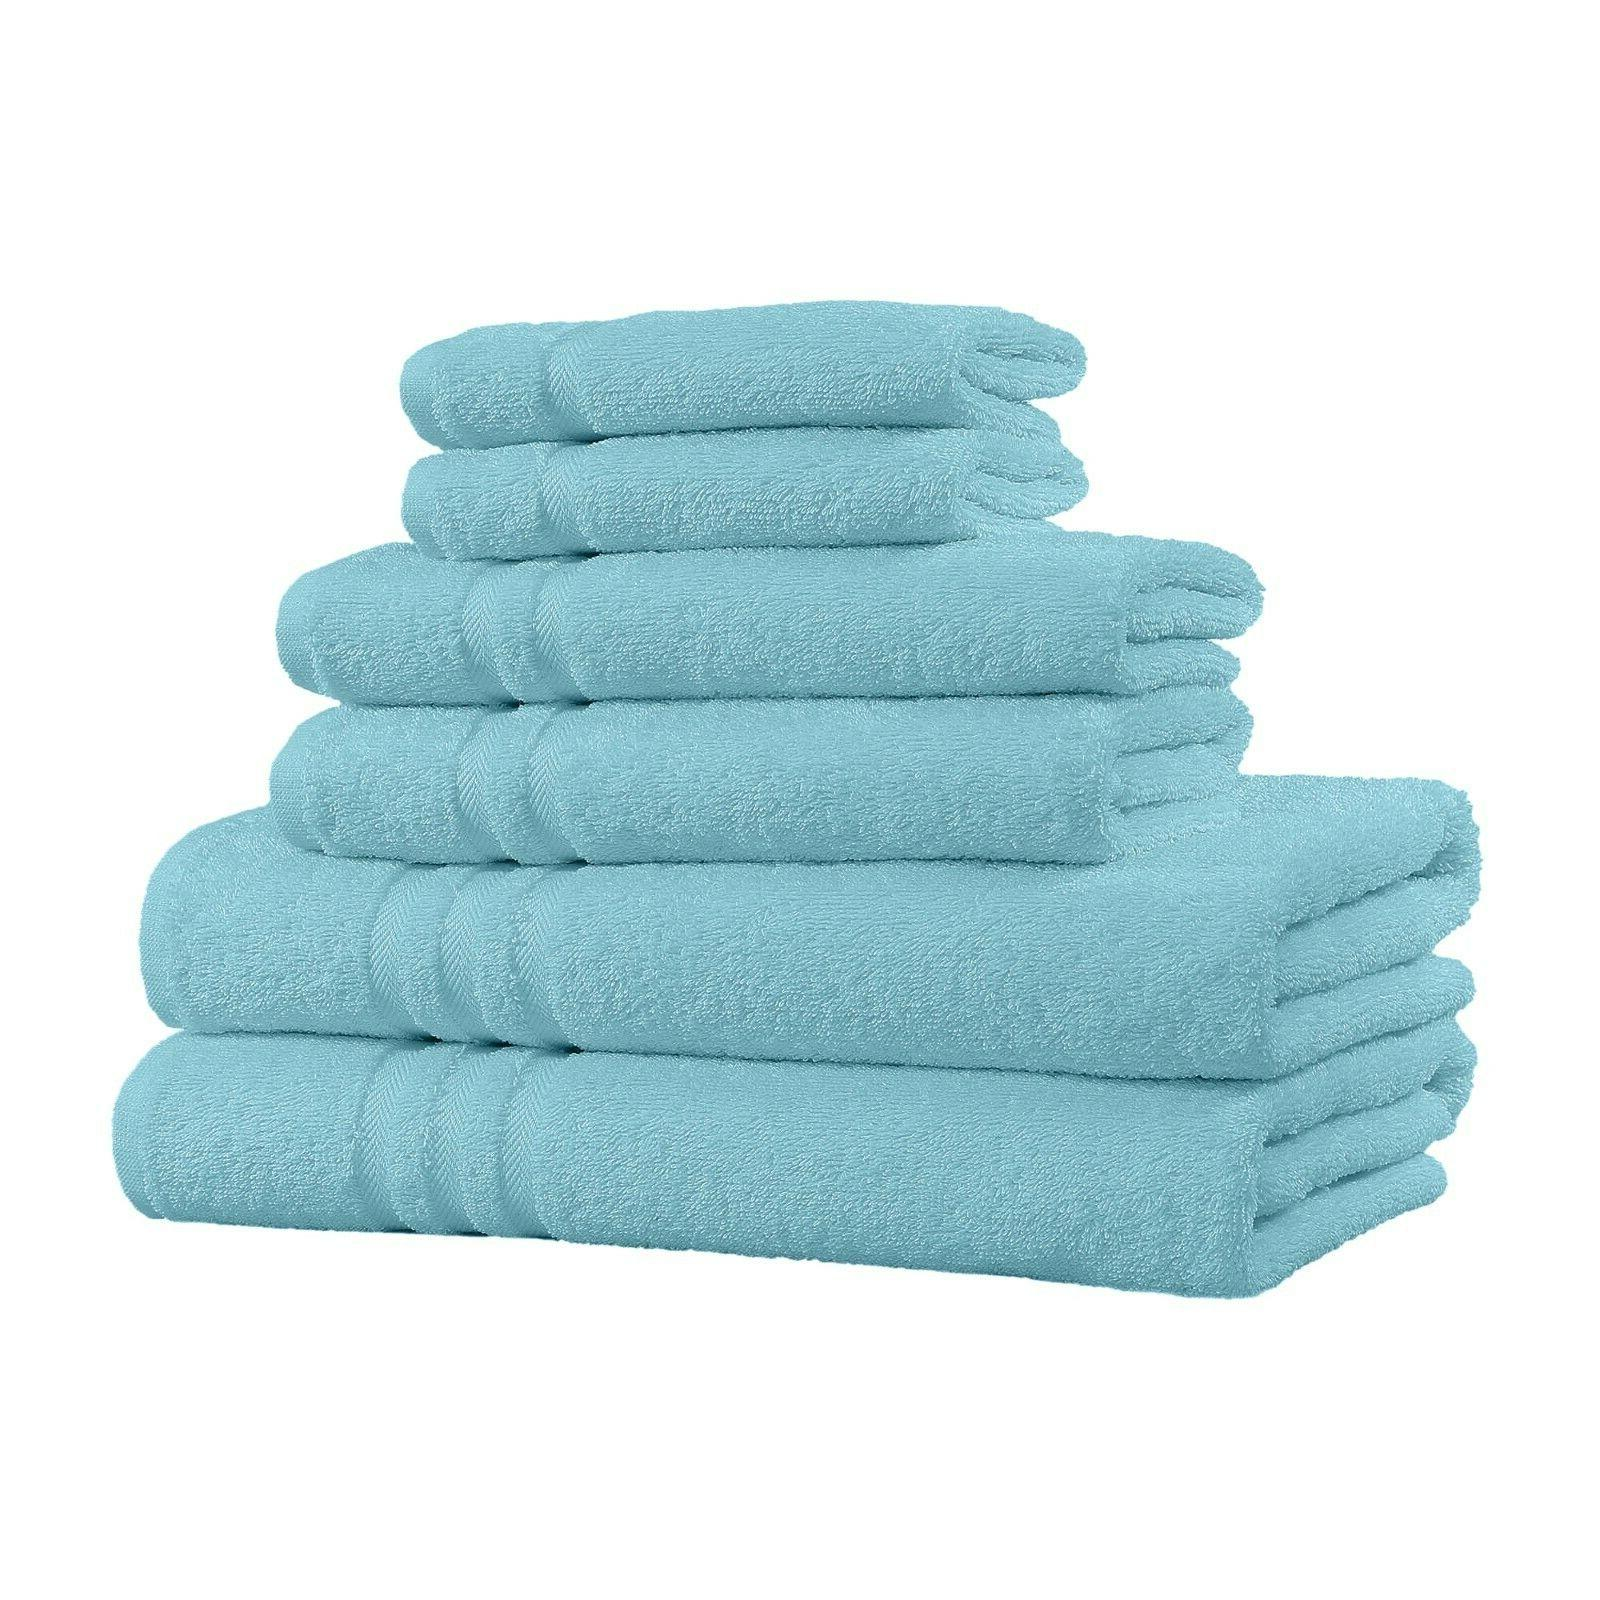 100% Cotton Set - Towels, and 2 Washcloths